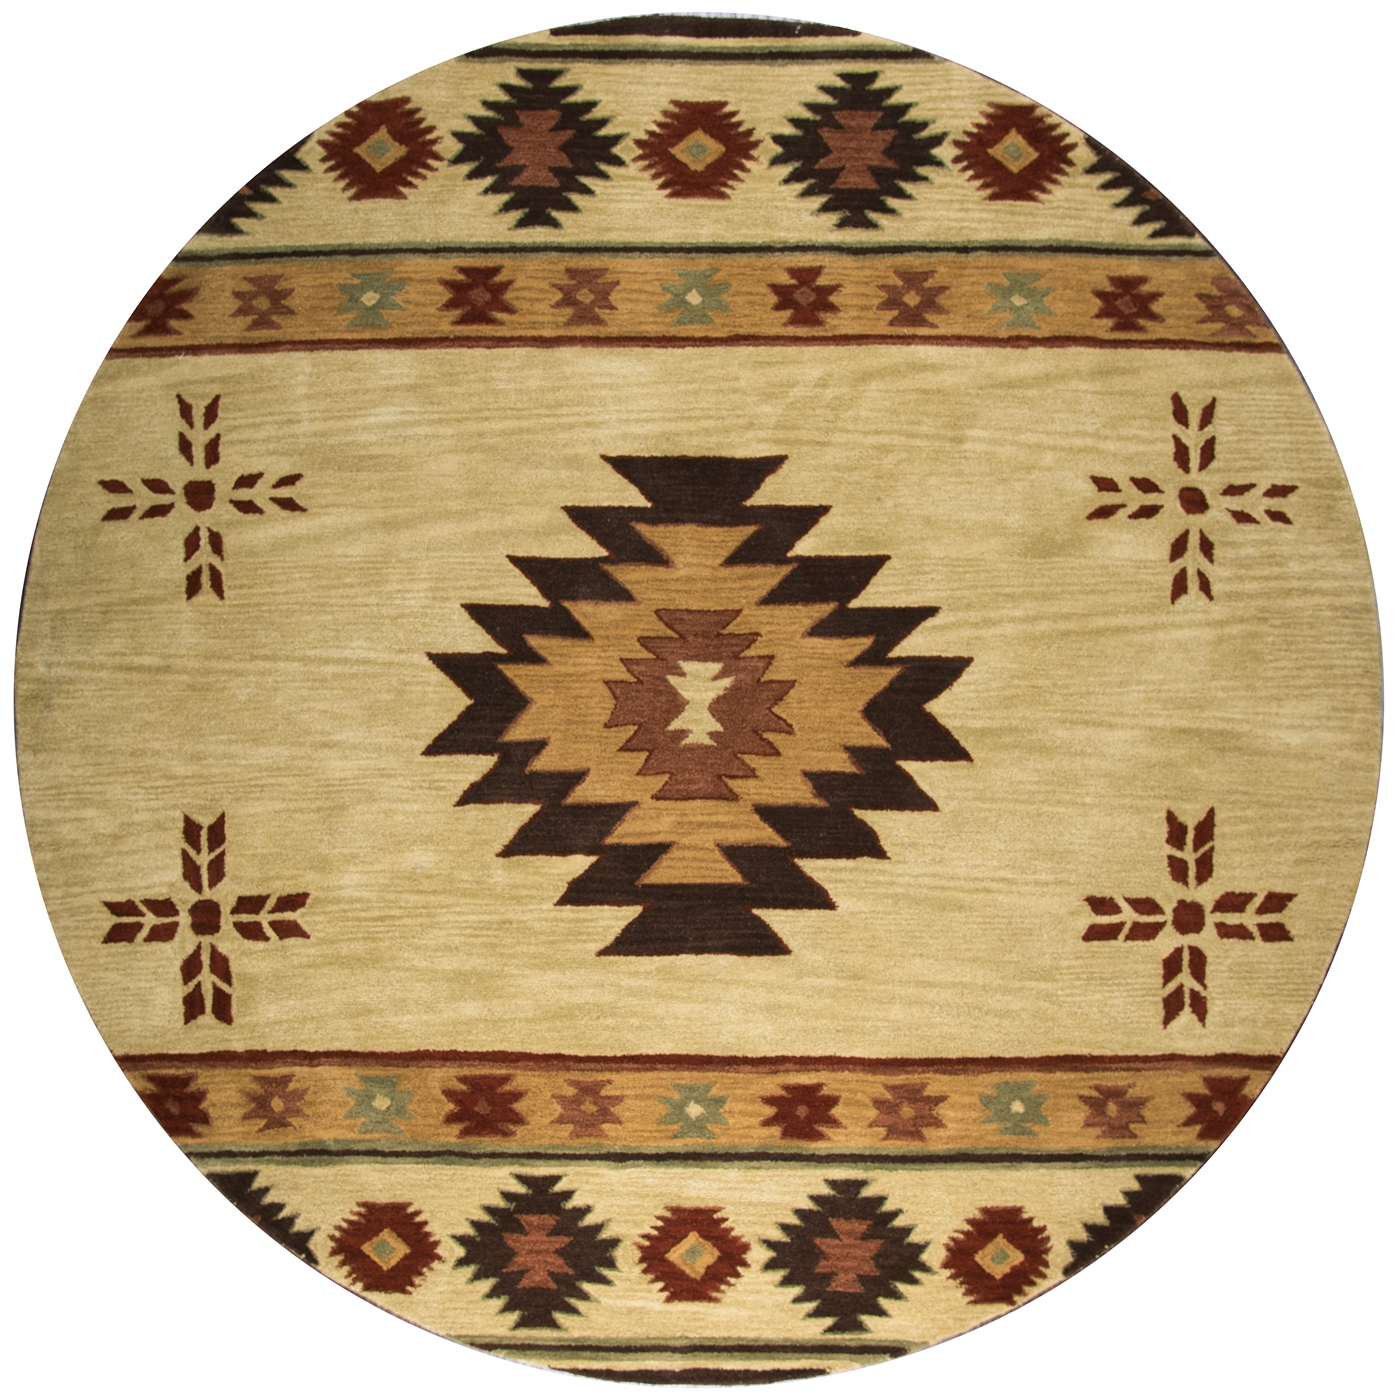 Southwest Indian Pattern Wool Round Rug In Khaki Brown Red